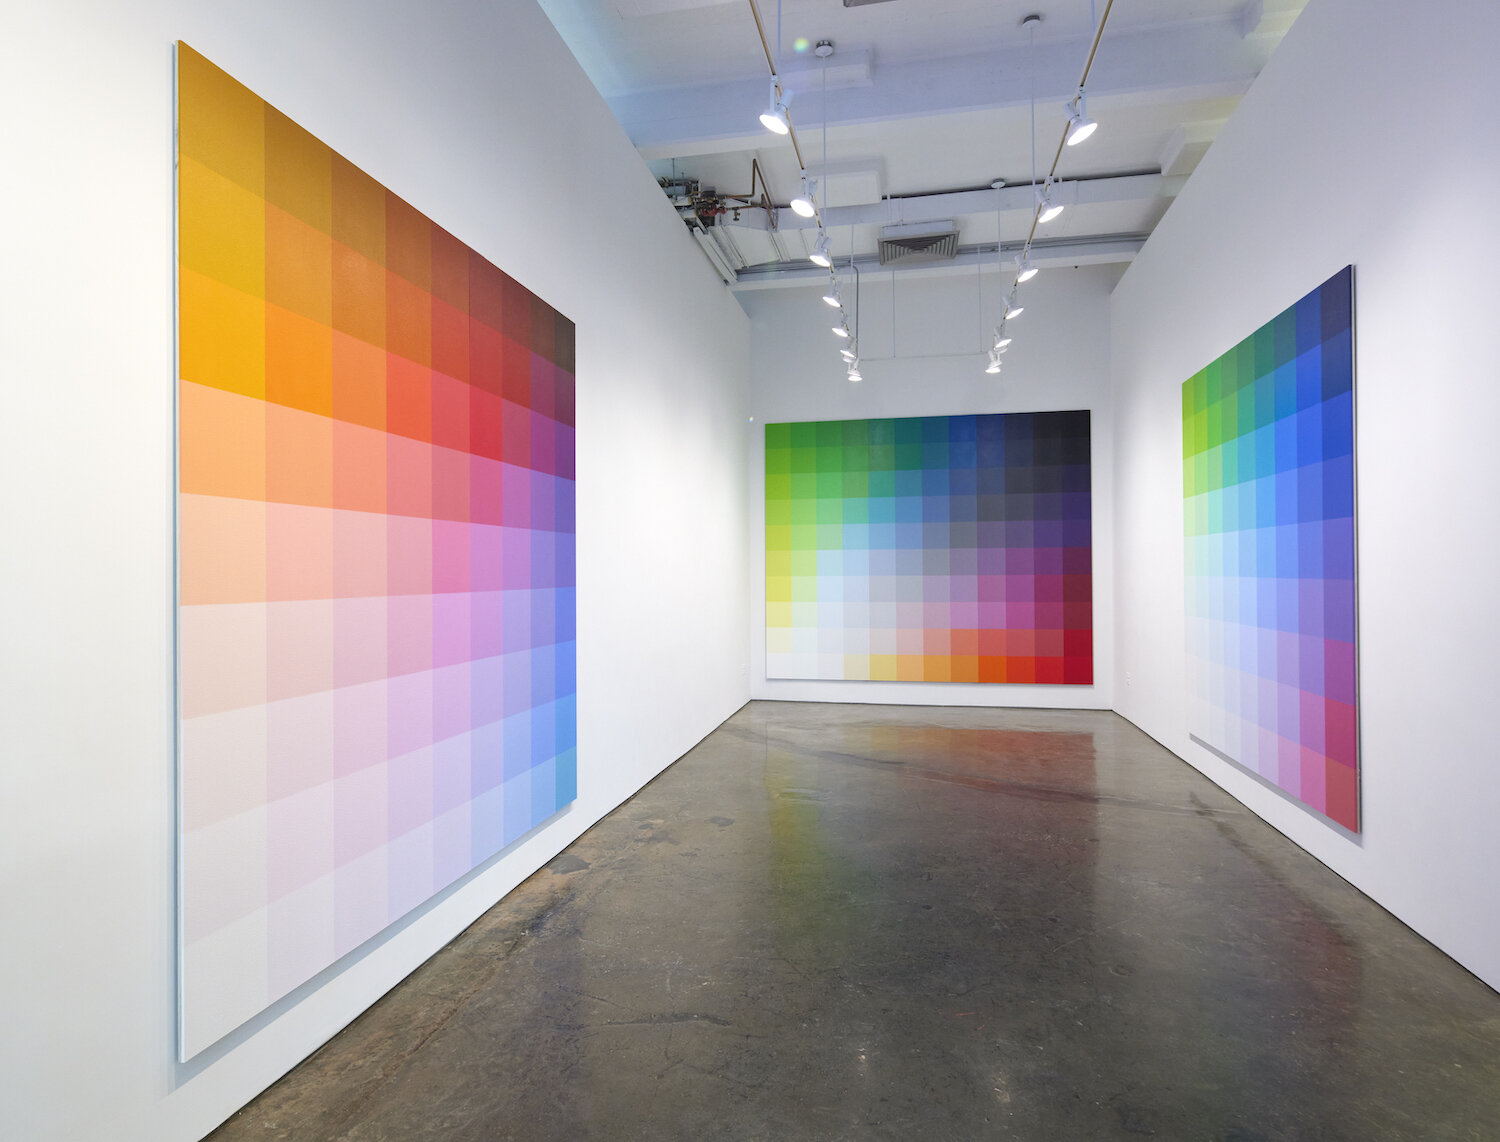 Exhibition view of Robert Swain: Immersive Color, MINUS SPACE, 2021